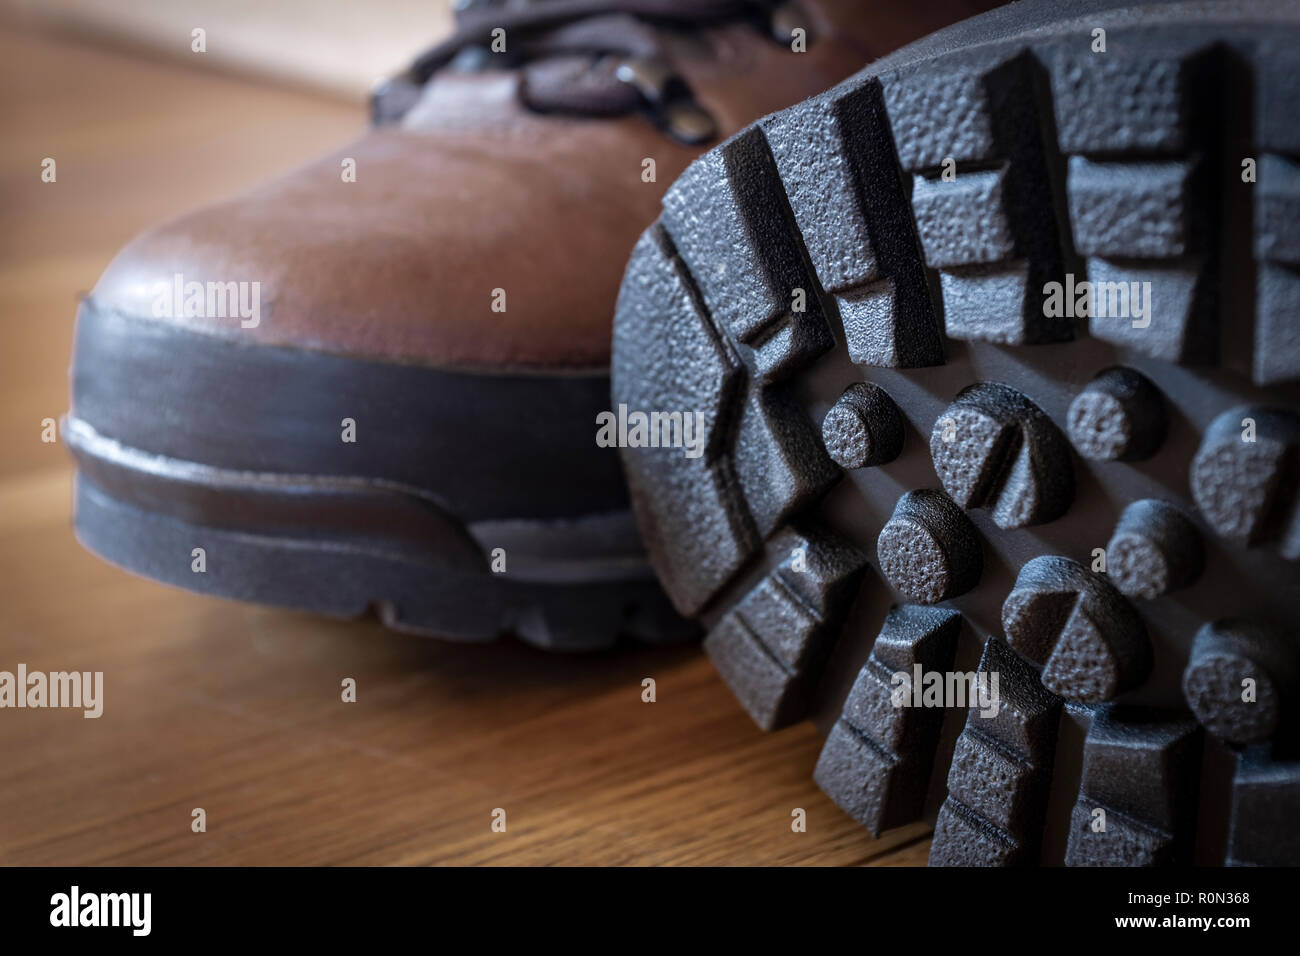 Deep tread lugs on the soles of a new pair of walking boots. - Stock Image